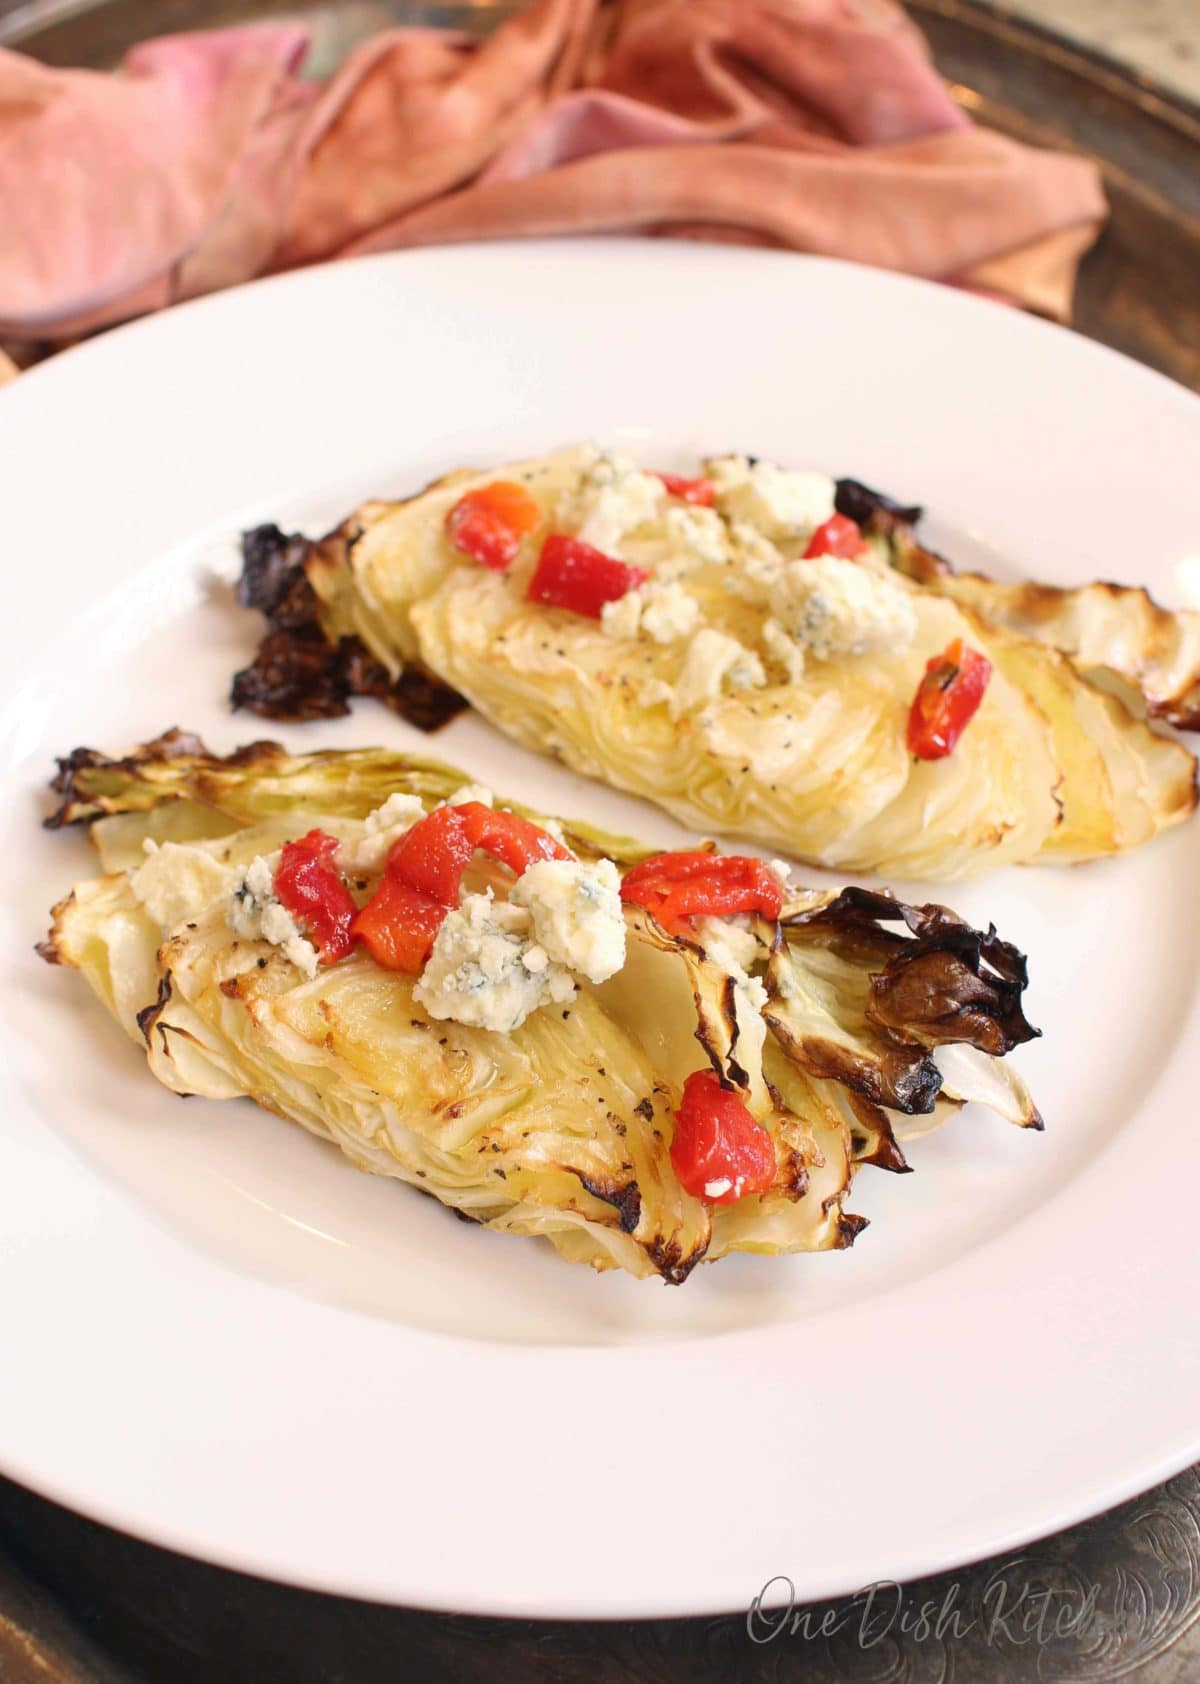 roasted cabbage topped with blue cheese and red peppers on a white plate next to an orange napkin